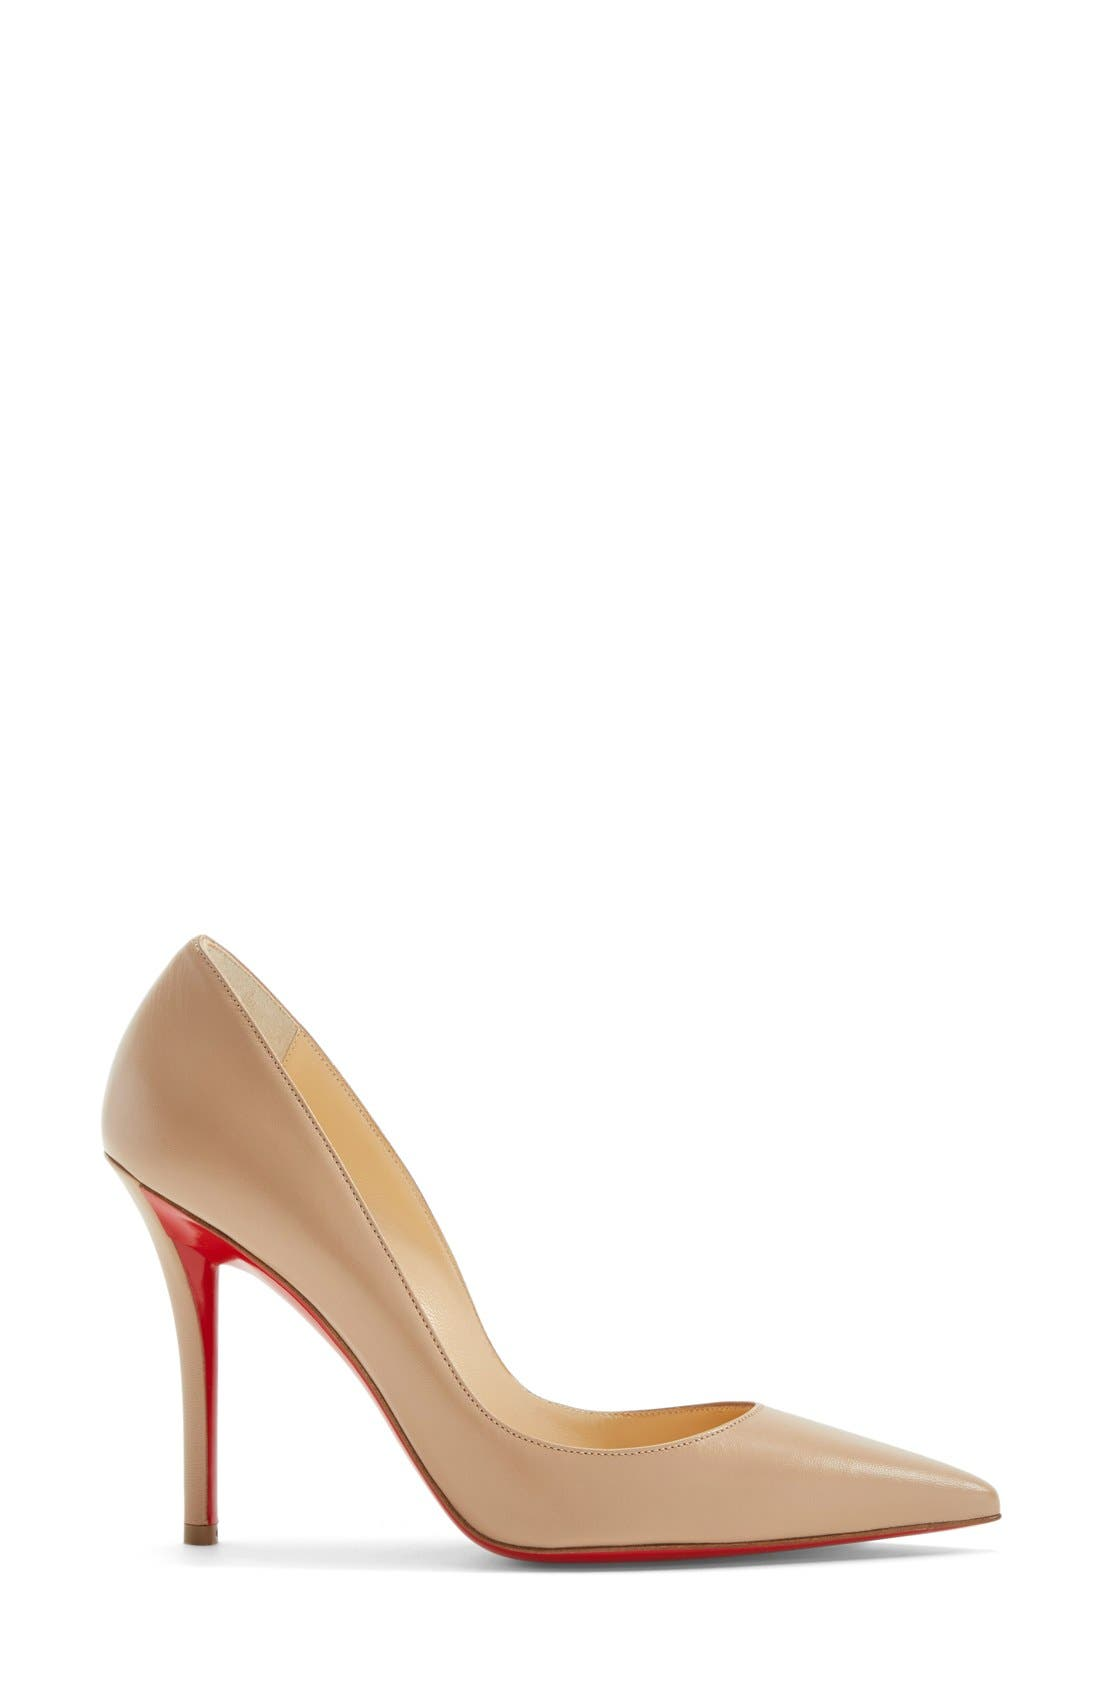 'Apostrophy' Pointy Toe Pump,                             Alternate thumbnail 20, color,